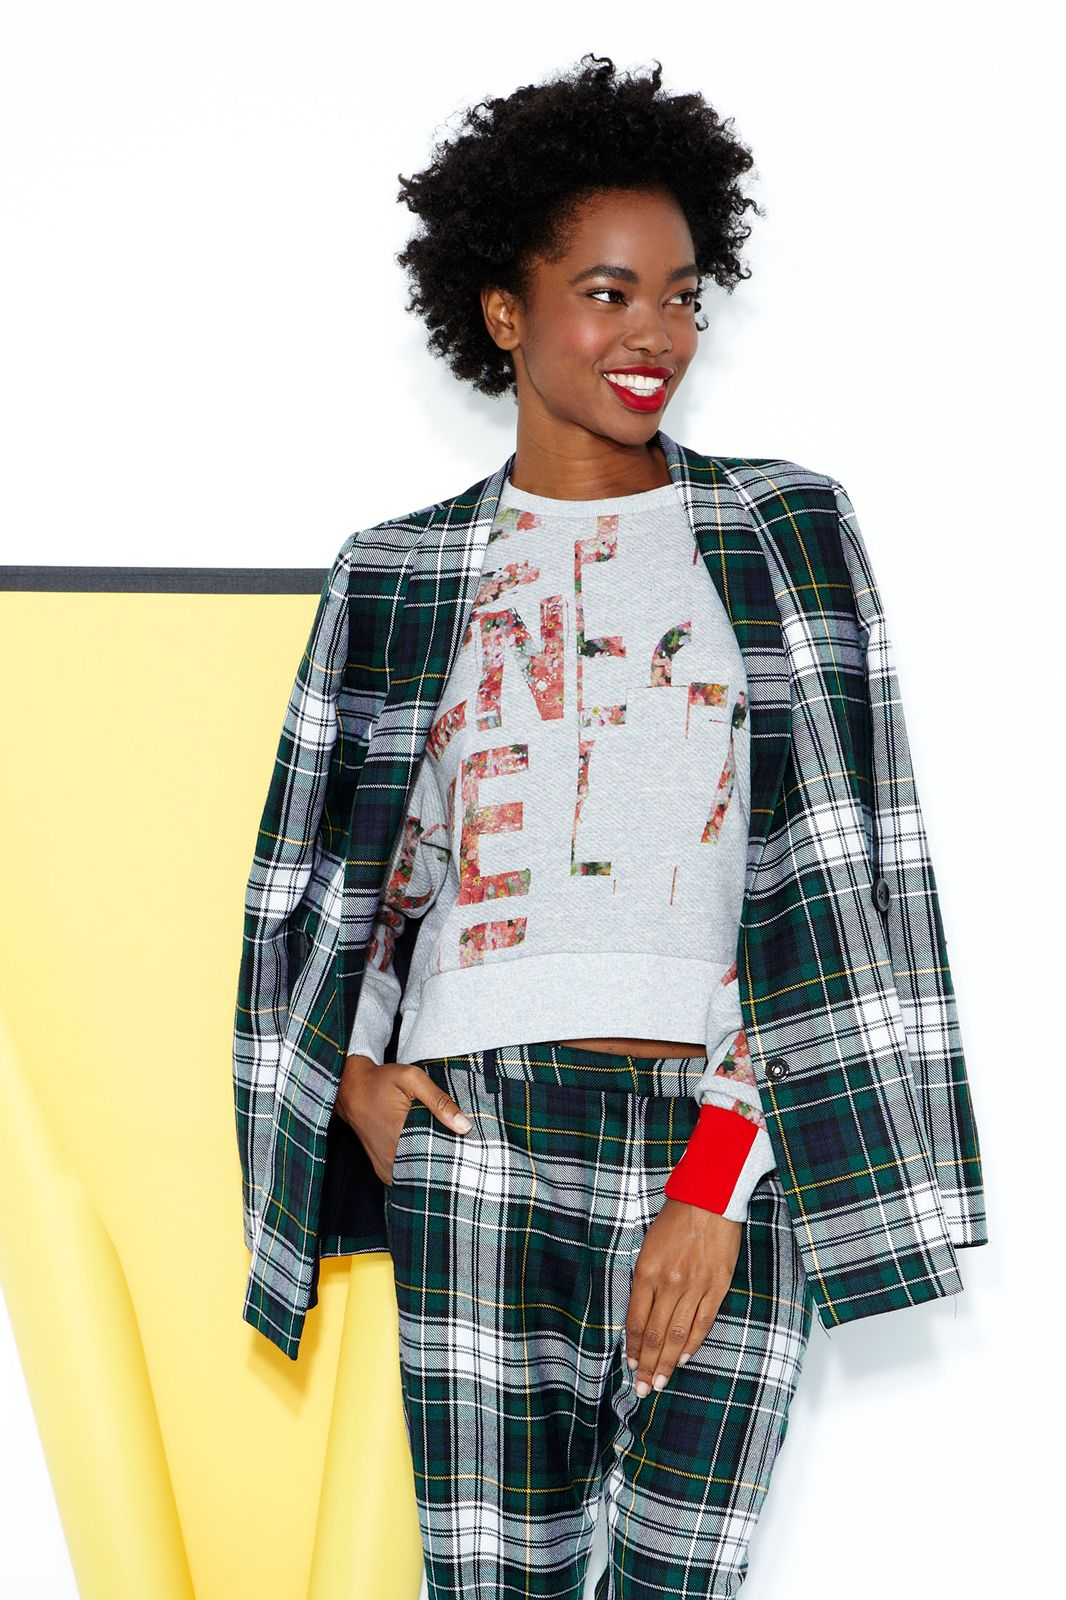 6 Outfits Featuring The Fancy Sweatshirt #refinery29